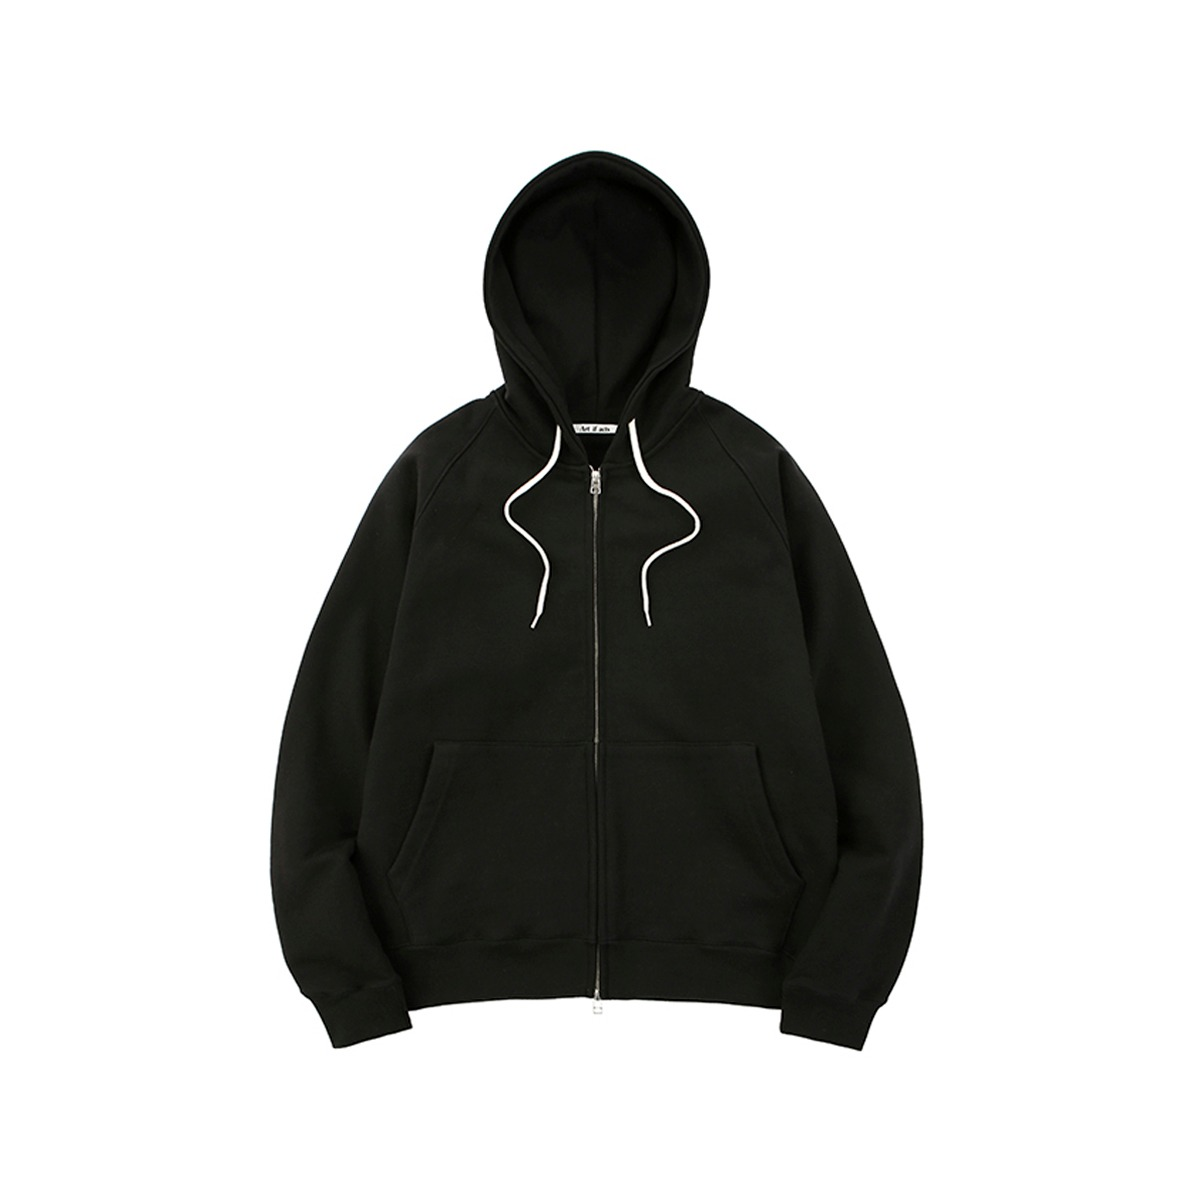 [ART IF ACTS] HEAVY HODDED SWEAT SHIRT(ZIPUP) 'BLACK'